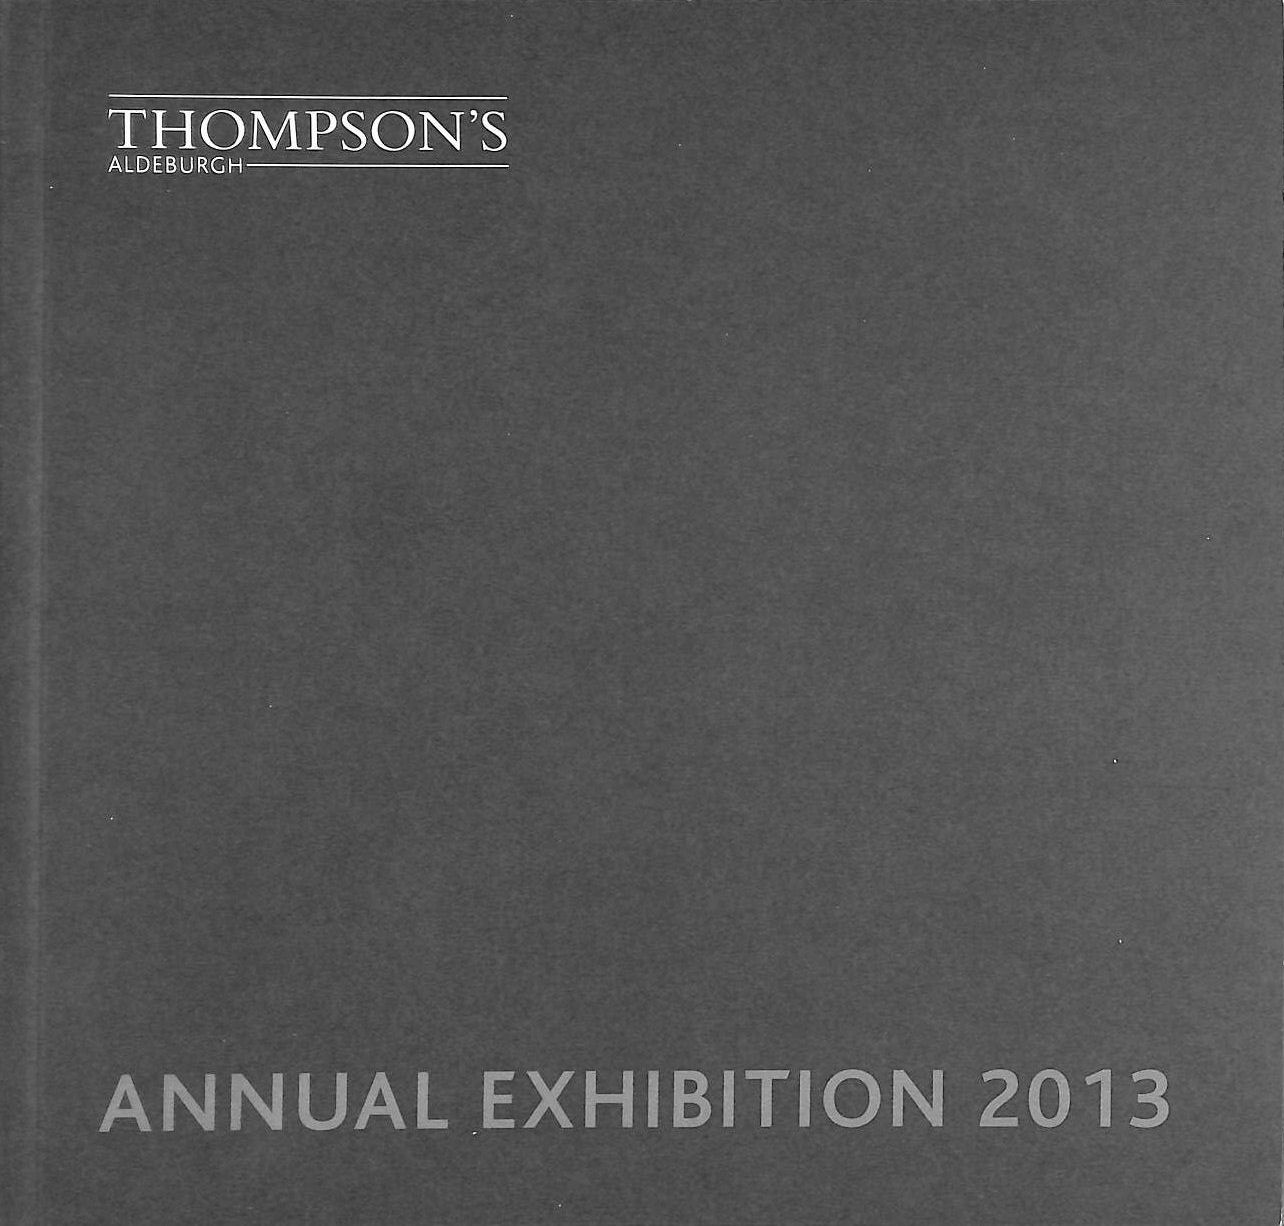 Image for Annual Exhibition 2013